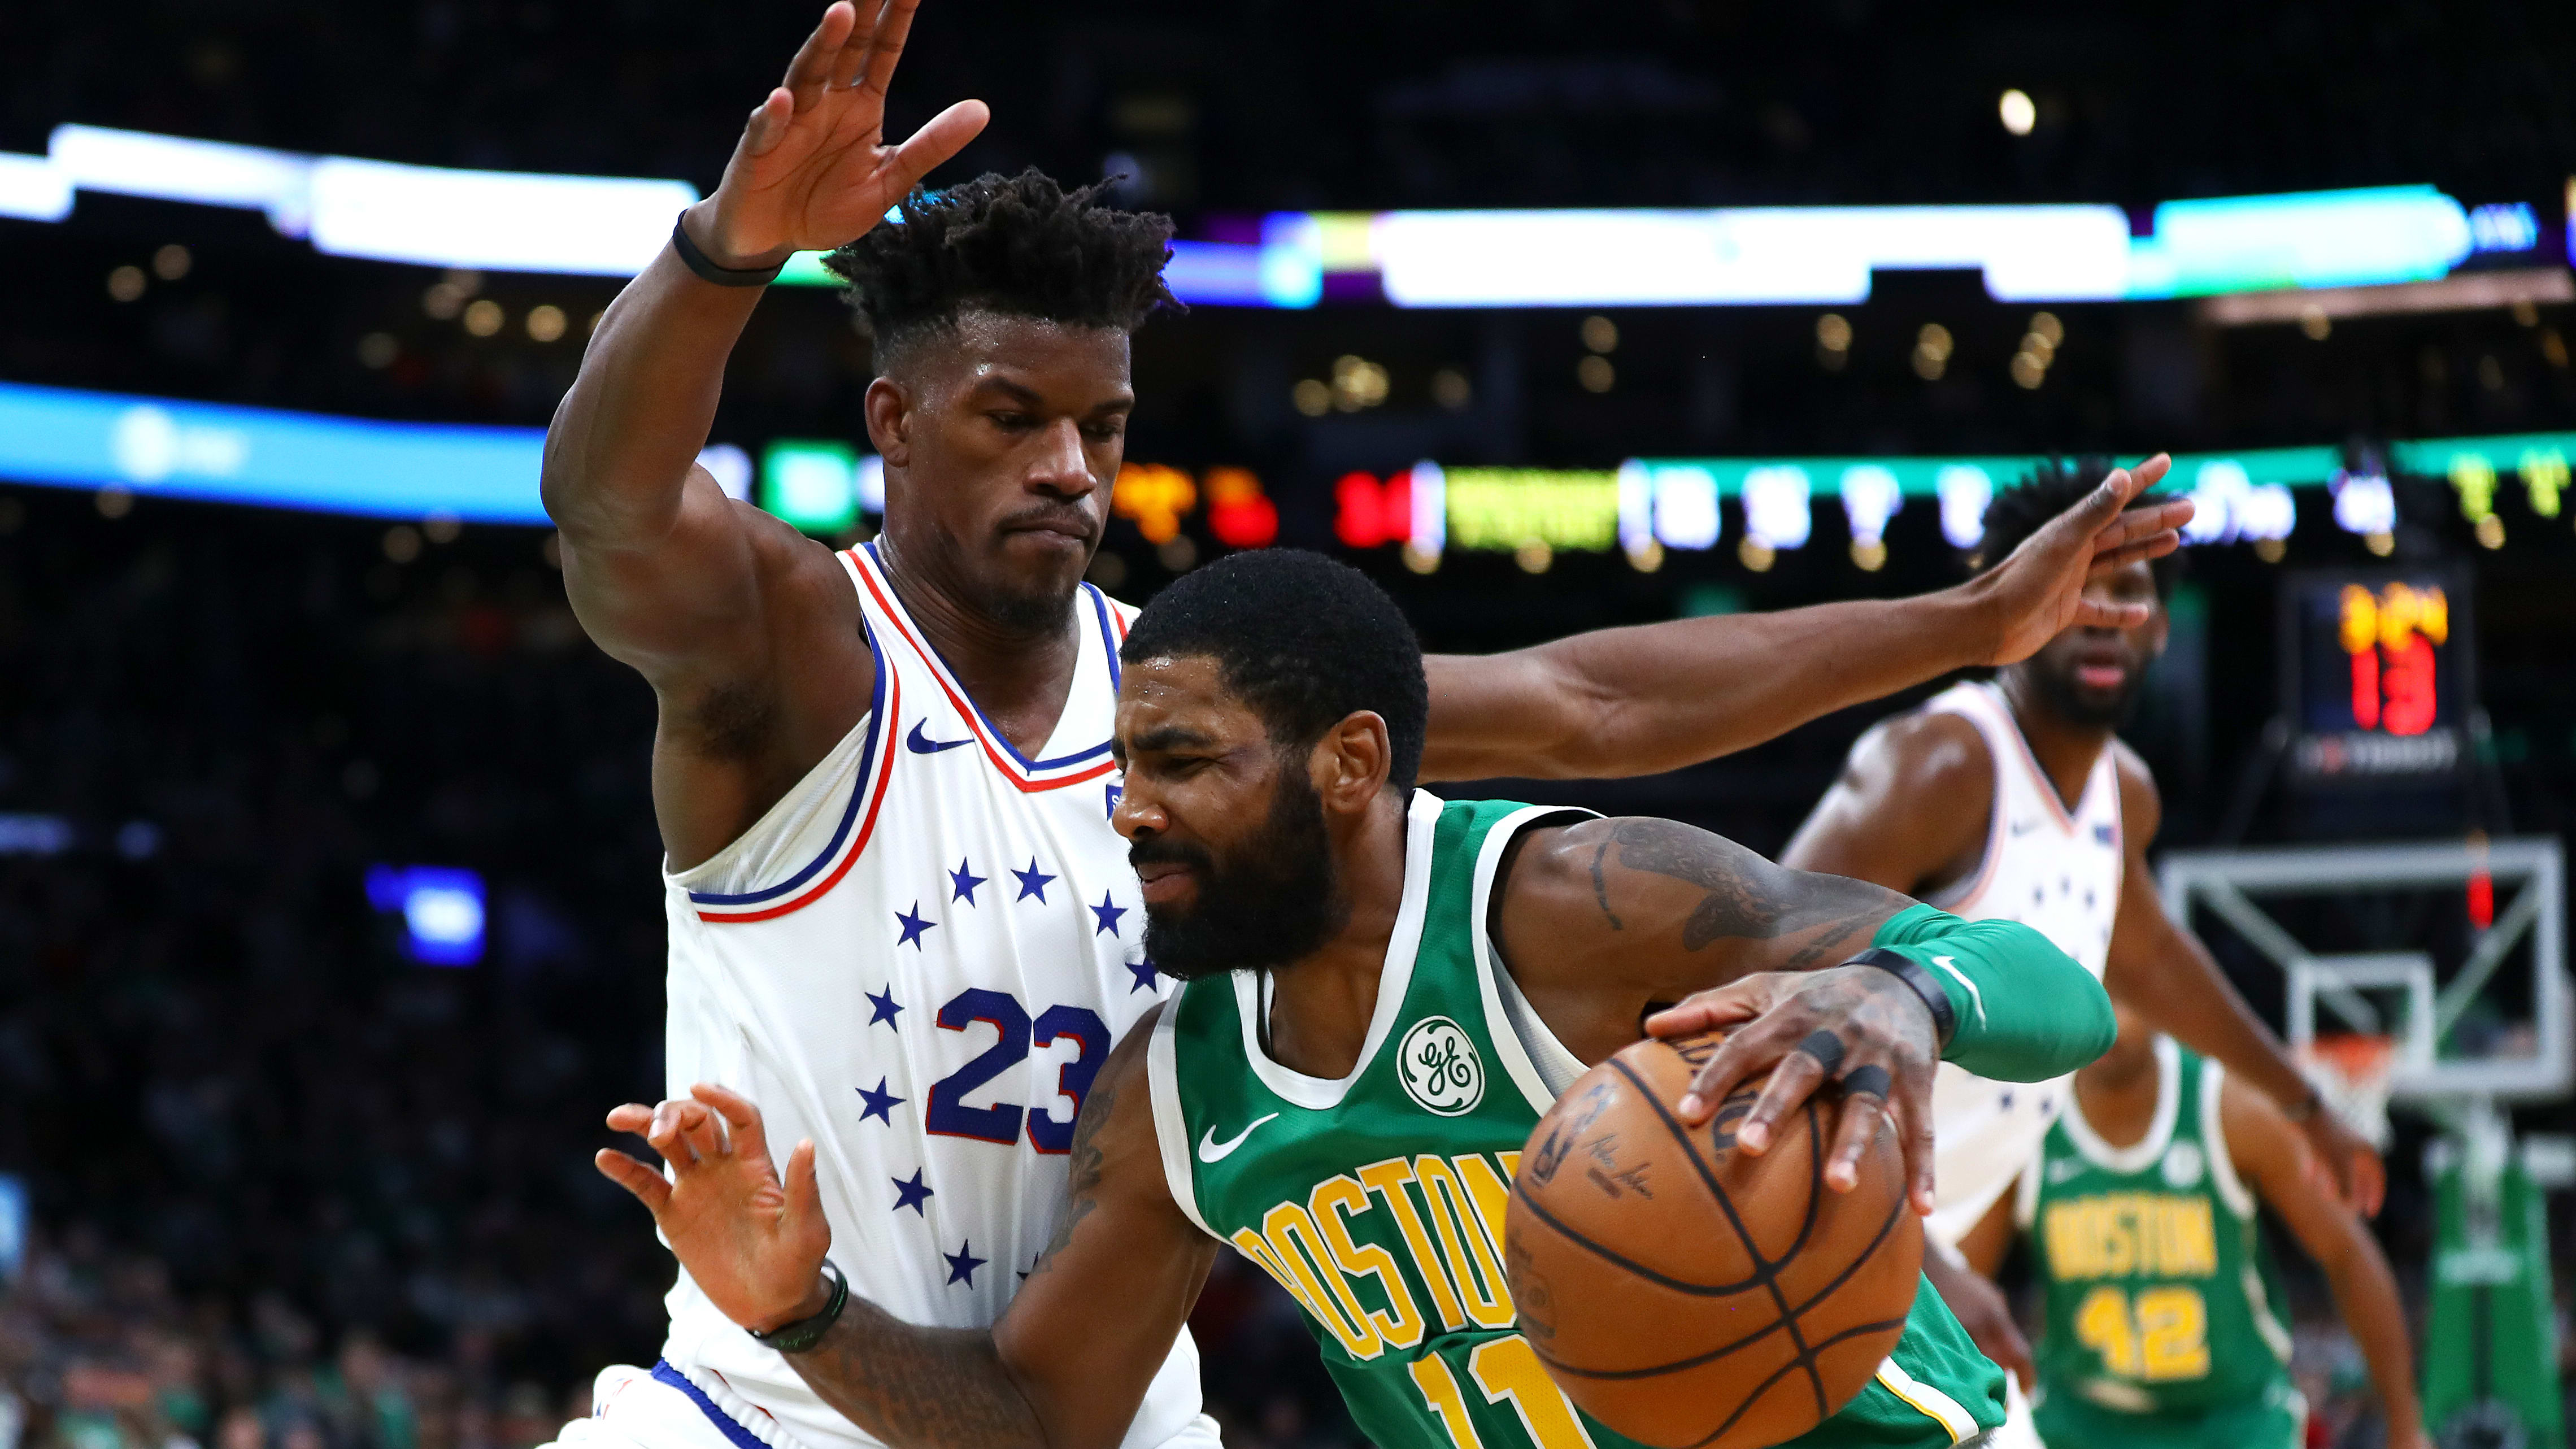 BOSTON, MASSACHUSETTS - DECEMBER 25: Kyrie Irving #11 of the Boston Celtics drives to the basket on Jimmy Butler #23 of the Philadelphia 76ers during the fourth quarter of the game at TD Garden on December 25, 2018 in Boston, Massachusetts. NOTE TO USER: User expressly acknowledges and agrees that, by downloading and or using this photograph, User is consenting to the terms and conditions of the Getty Images License Agreement. (Photo by Omar Rawlings/Getty Images)